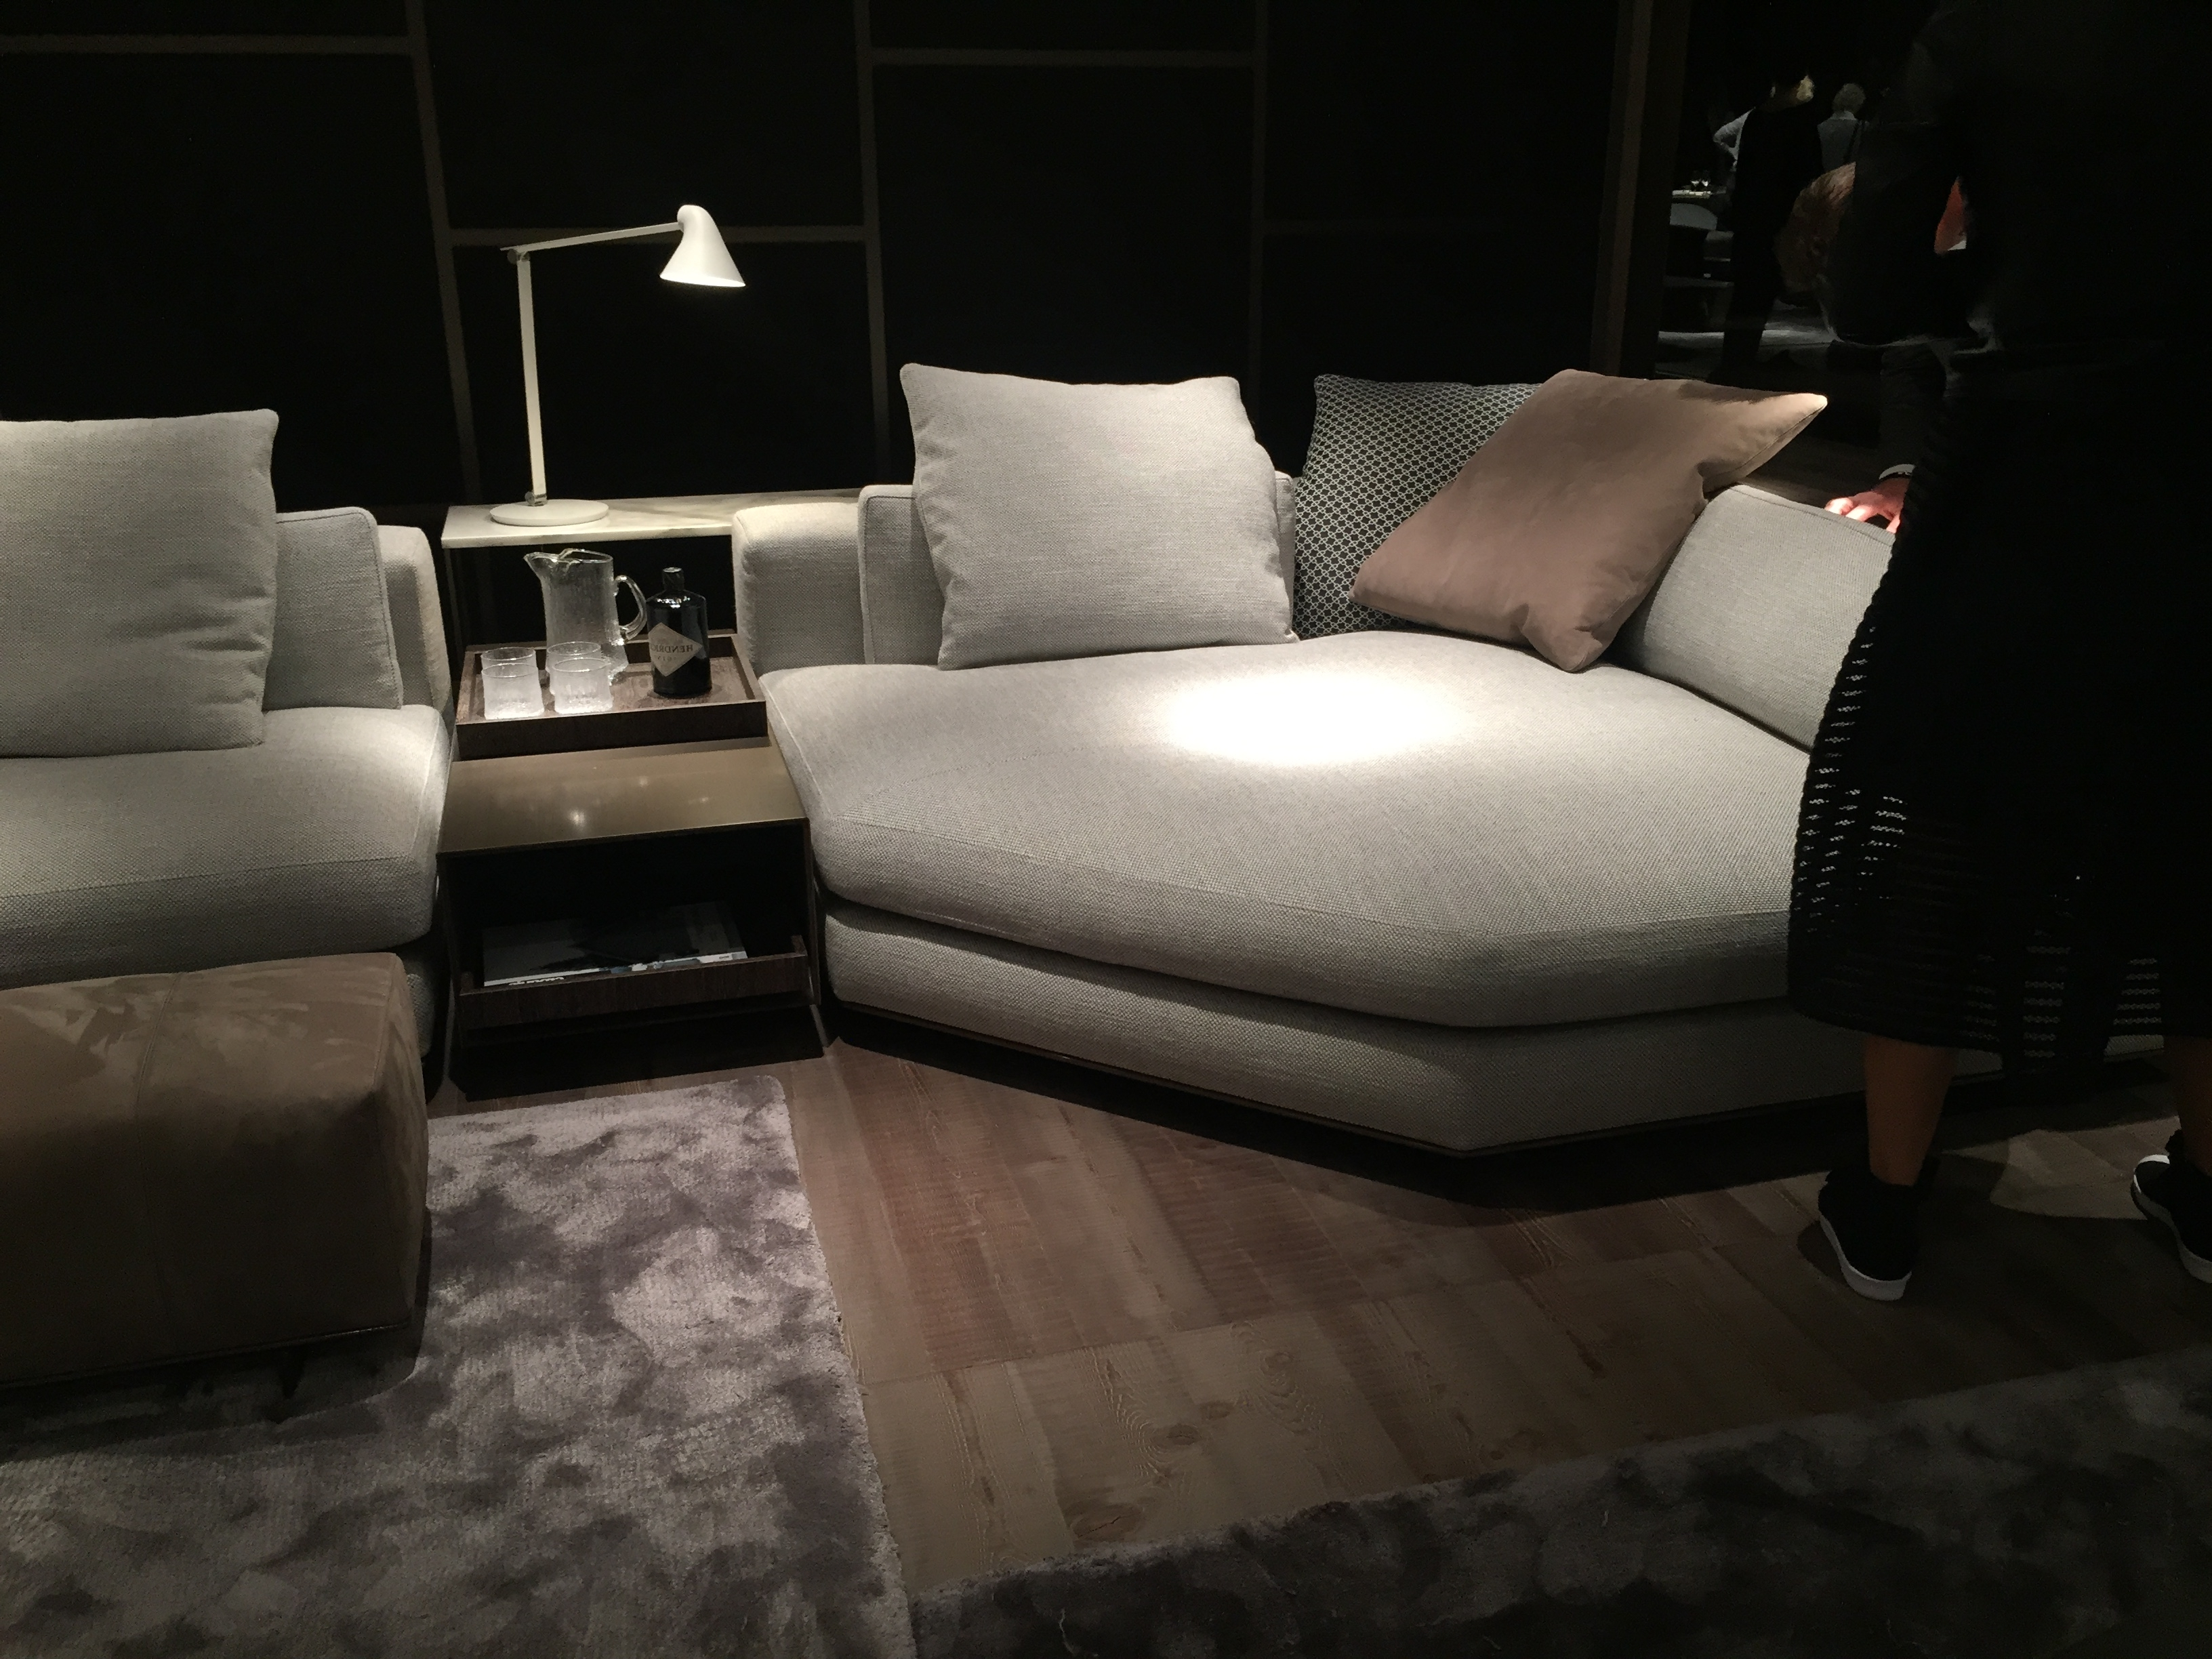 Minotti – Freeman Seating Corner And Console And Arne Jacobsen With Regard To Most Current Sofas With Consoles (View 9 of 15)